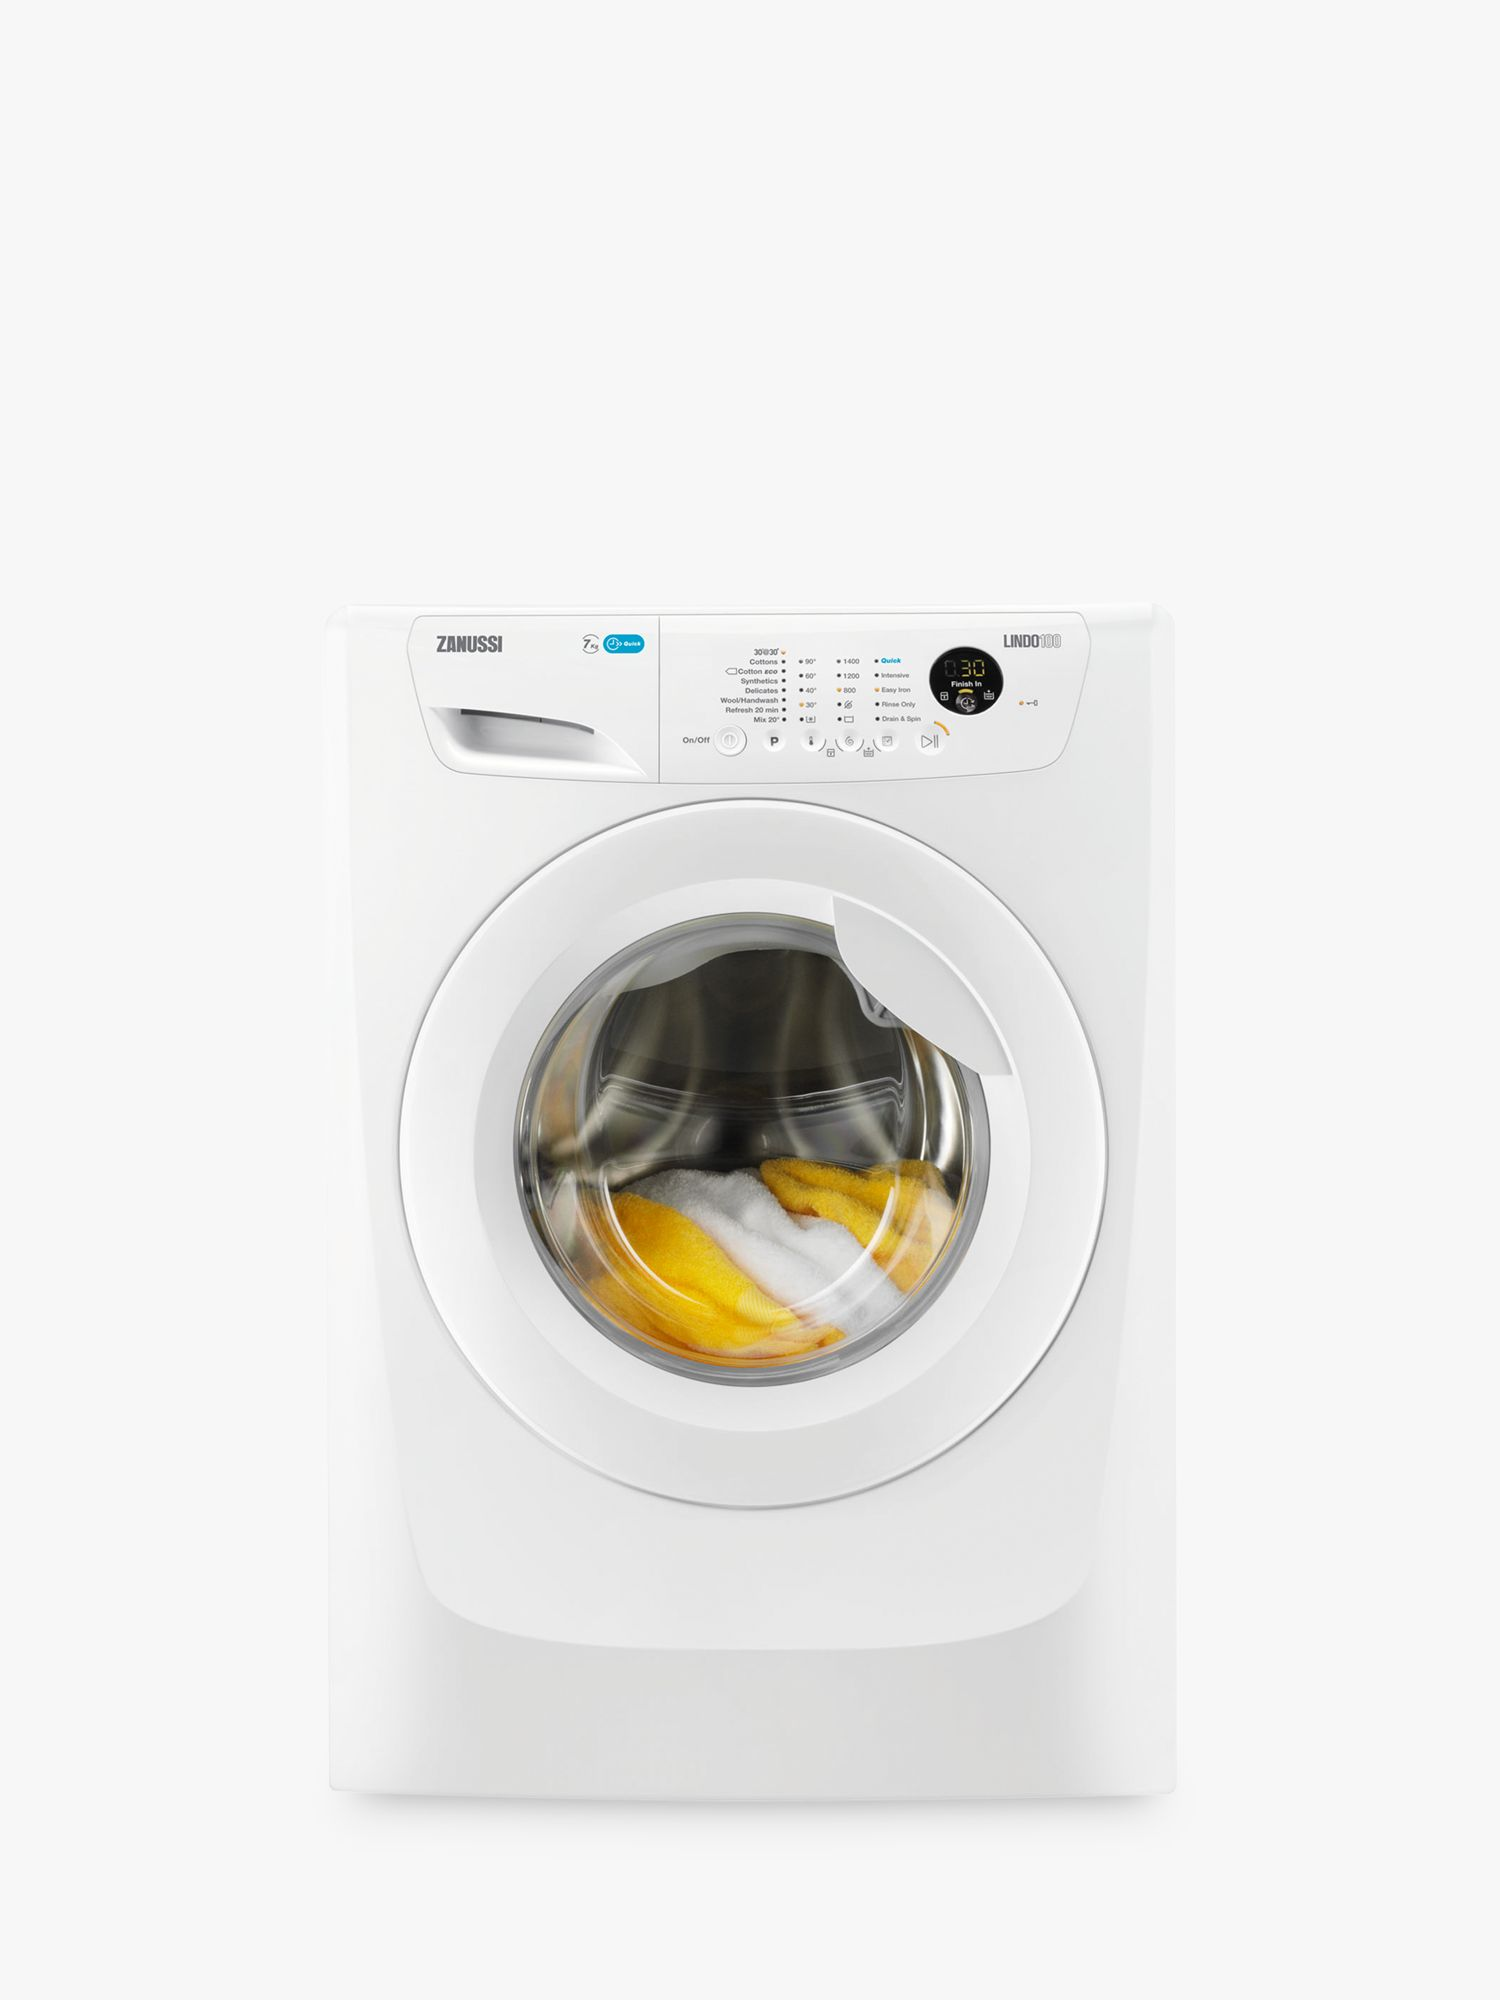 Zanussi Zanussi ZWF71463W Washing Machine, 7kg Load, A+++ Energy Rating, 1400rpm Spin, White